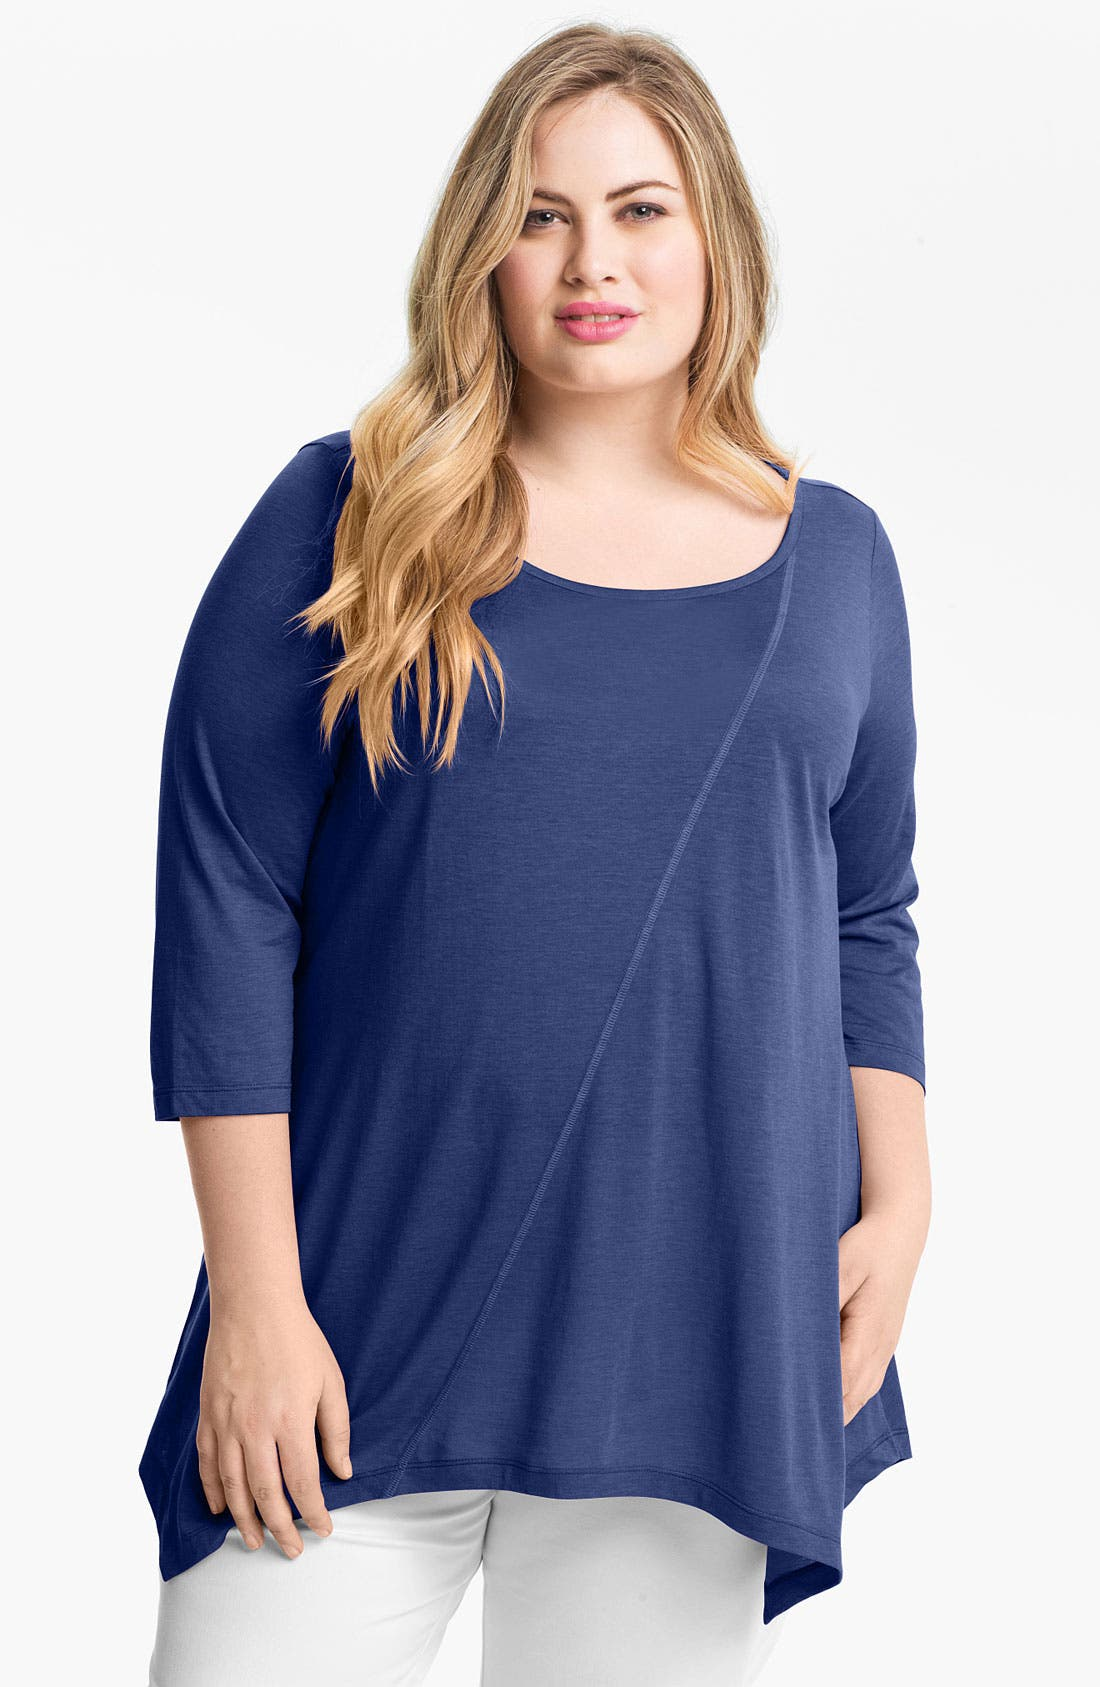 Alternate Image 1 Selected - Eileen Fisher Ballet Neck Top (Plus Size)